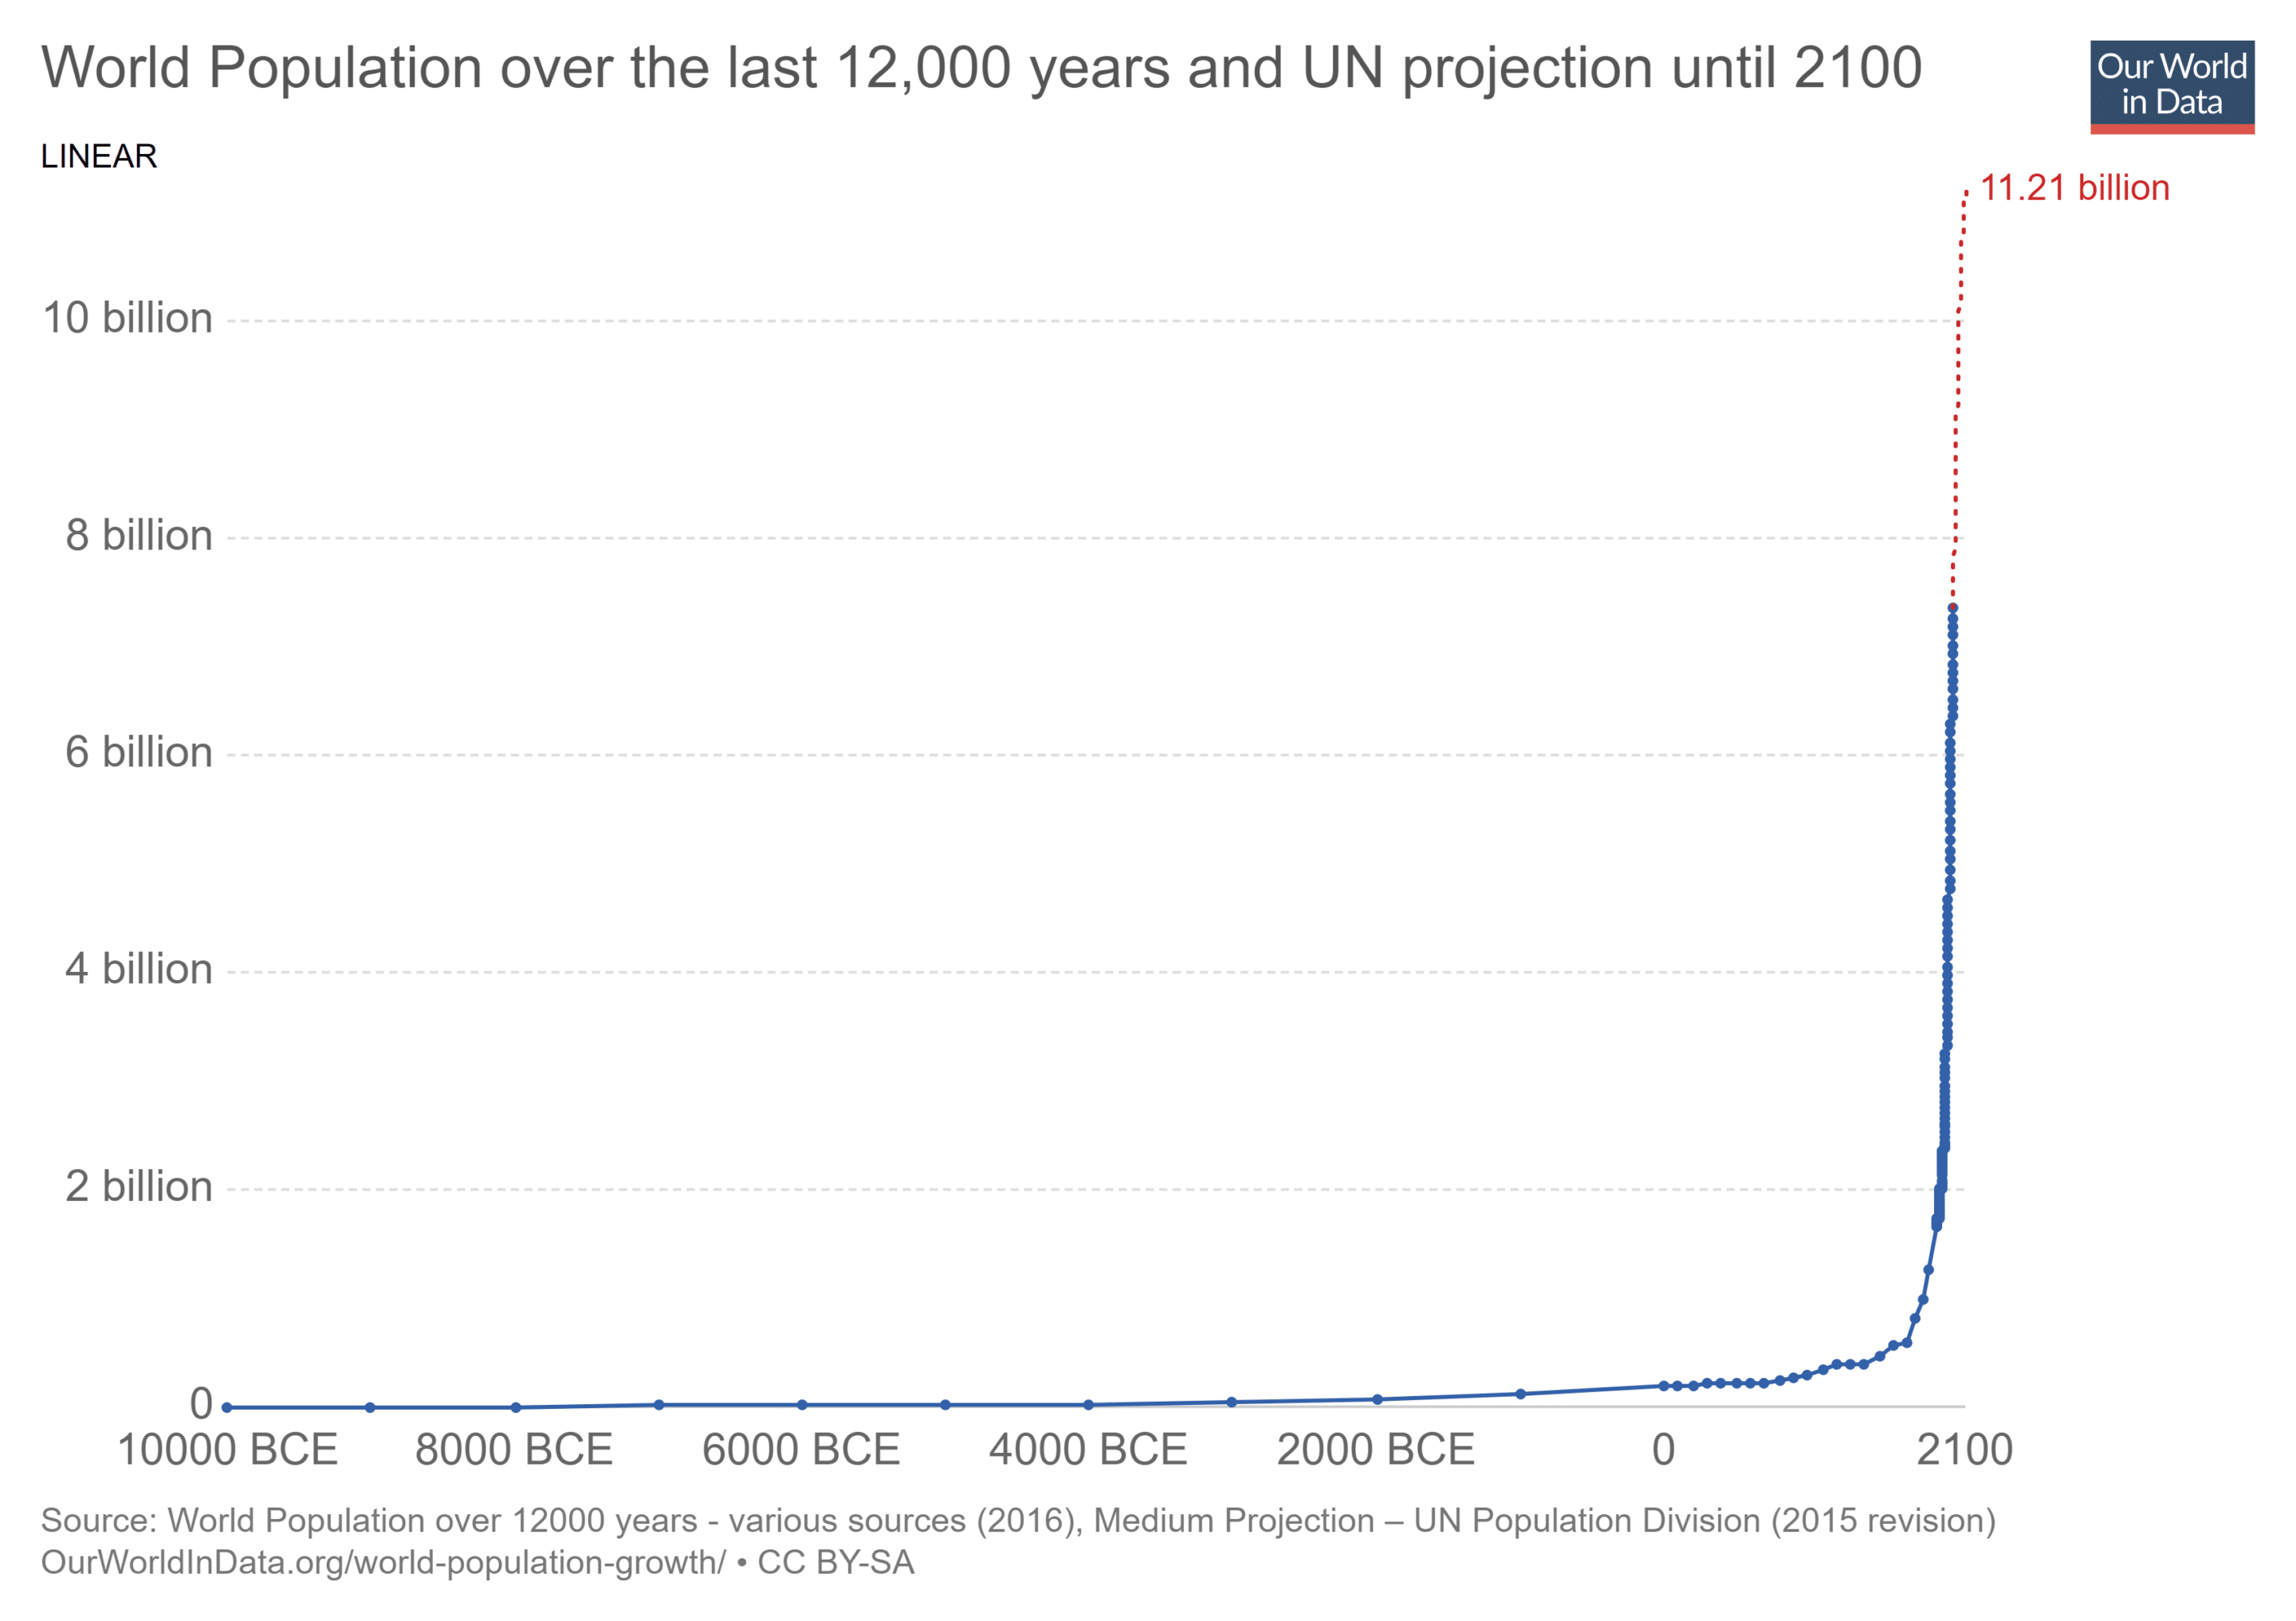 world-population-1750-2015-and-un-projection-until-2100